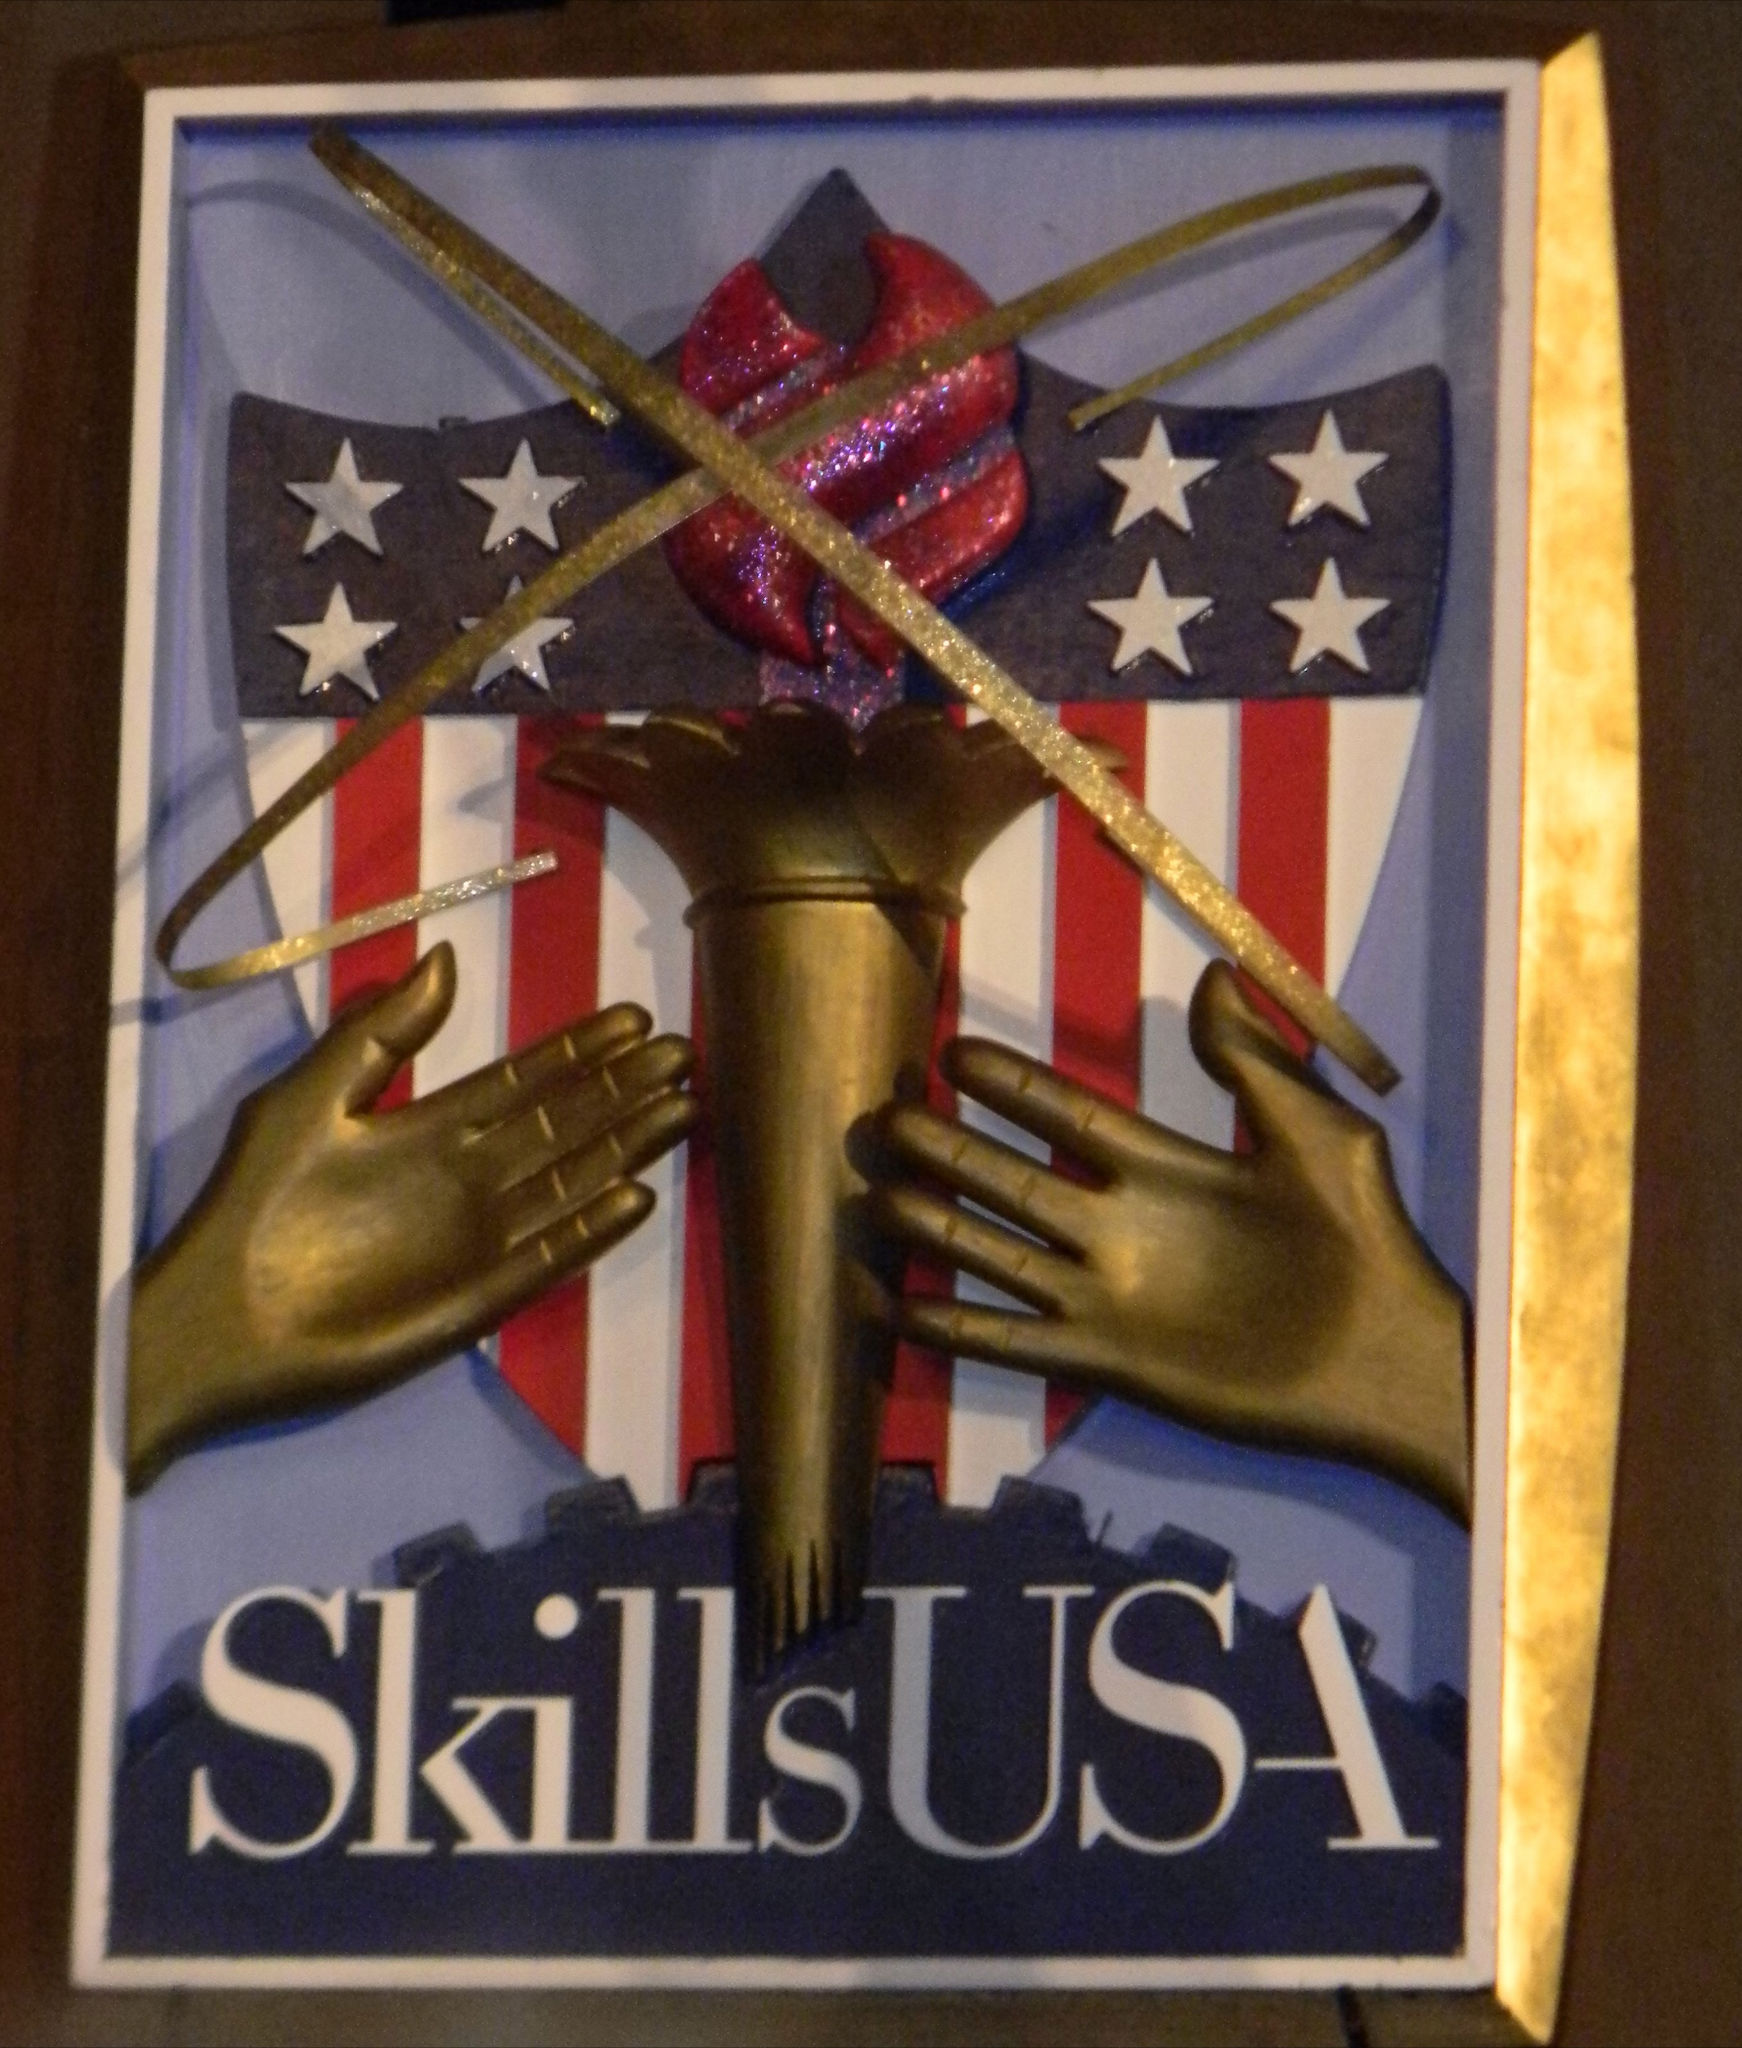 SkillsUSA 2012 Part 2  Early Childhood and Youth Development  Guest Speakers Teacher